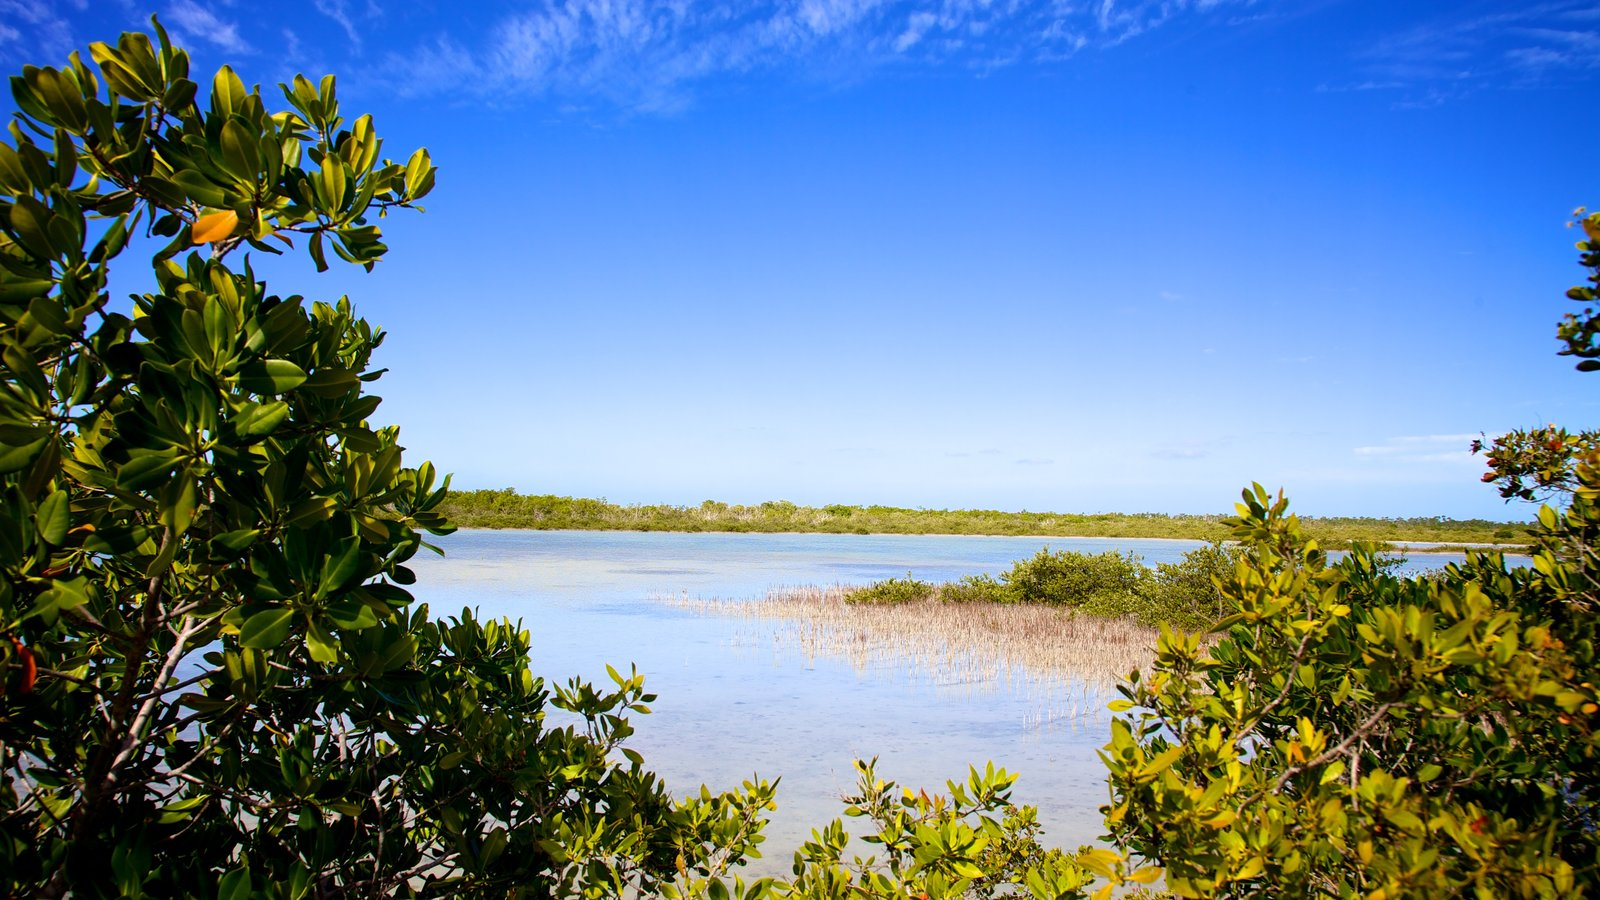 singles in big pine key Searching for a home in big pine key, fl the real estate professionals at  century 21 schwartz realty are here to help.